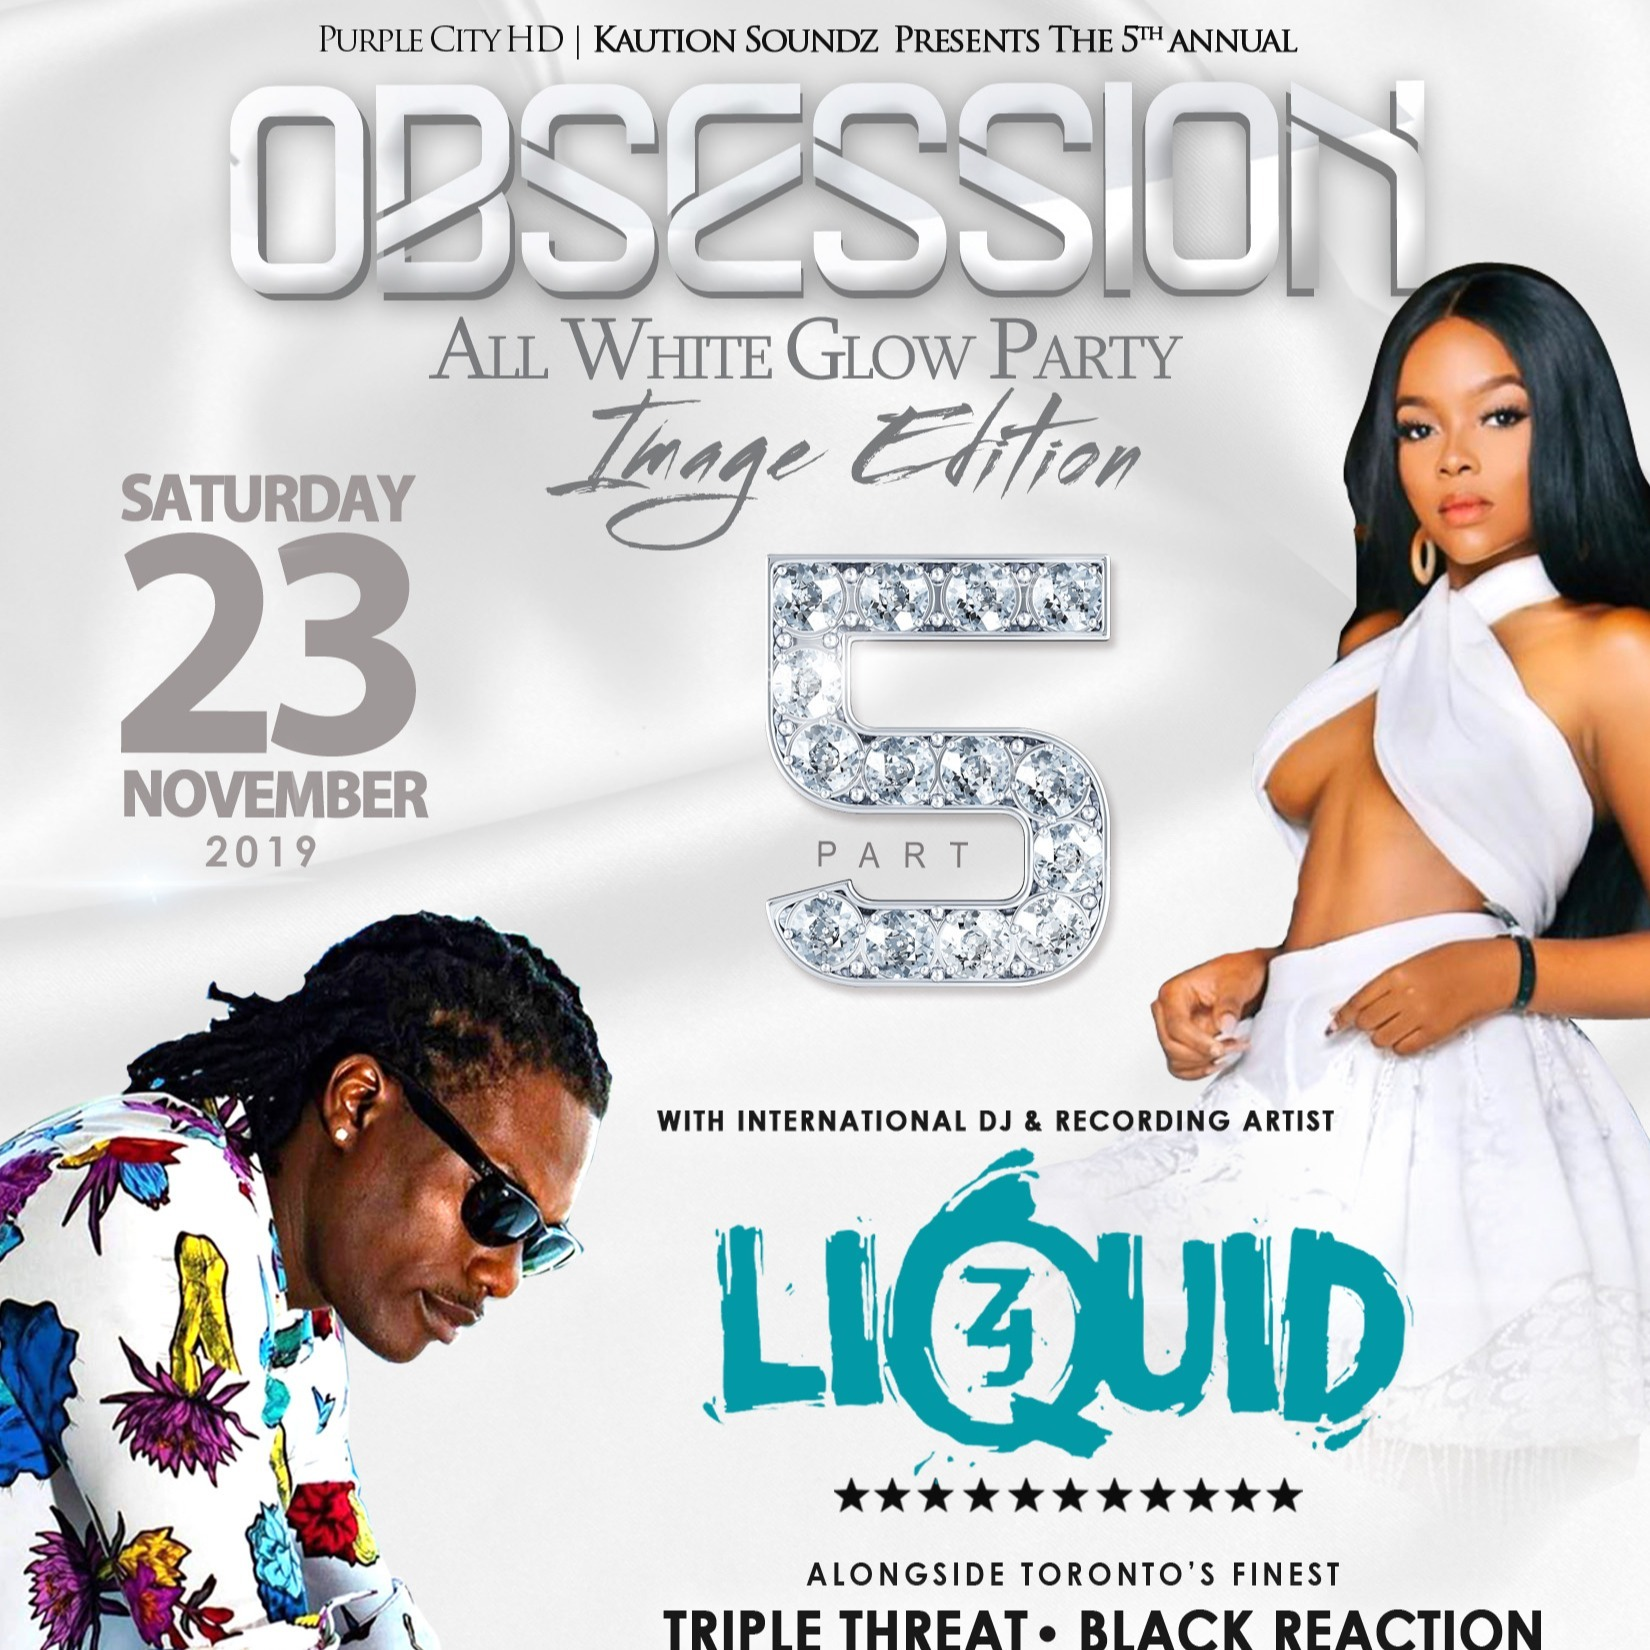 Obsession - All White Glow Party | Image Edition